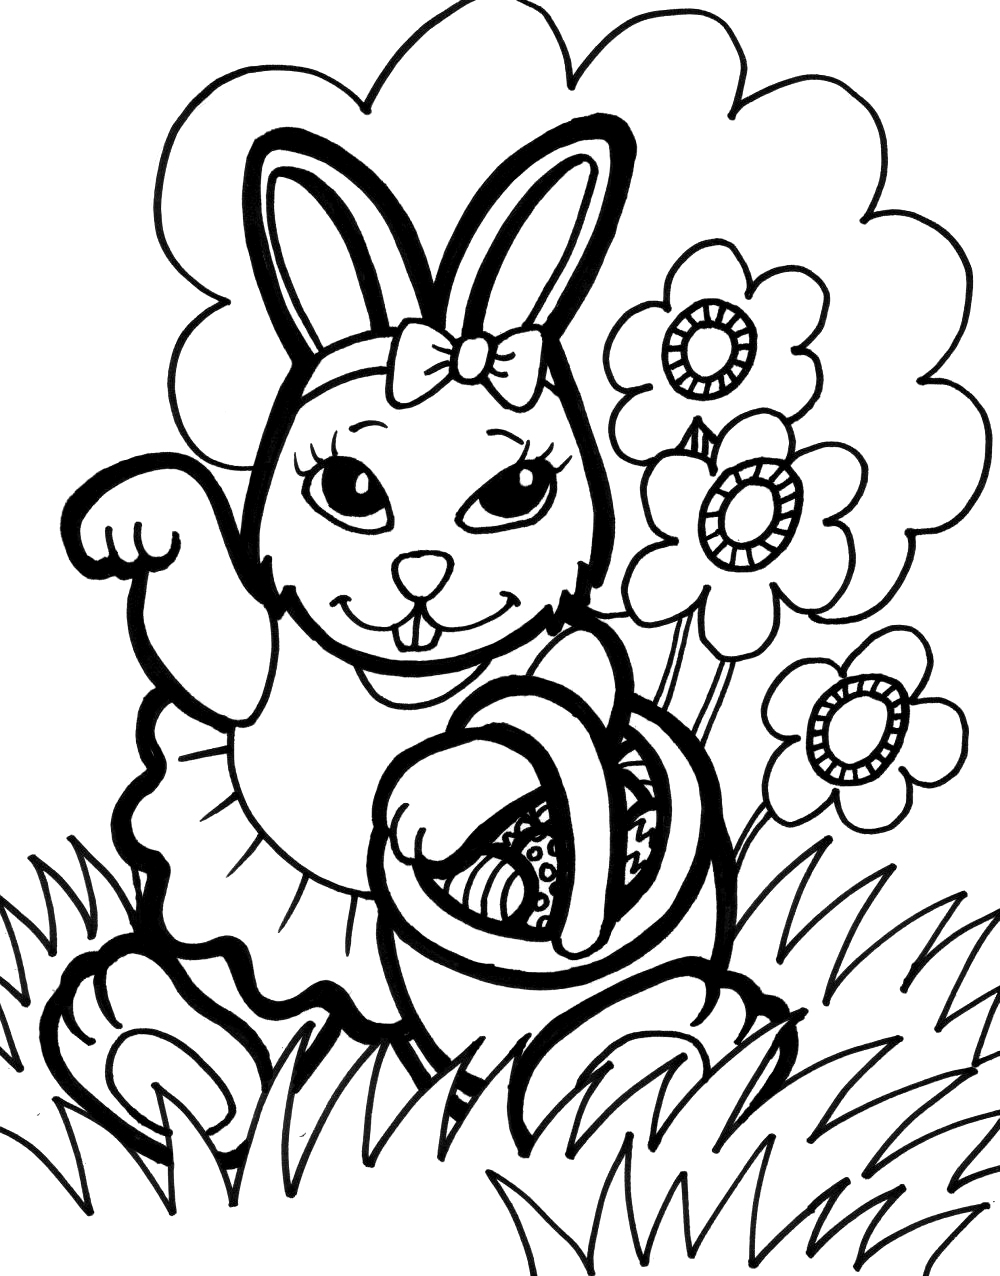 coloring pages of a bunny bunny rabbit coloring pages to download and print for free of a bunny pages coloring